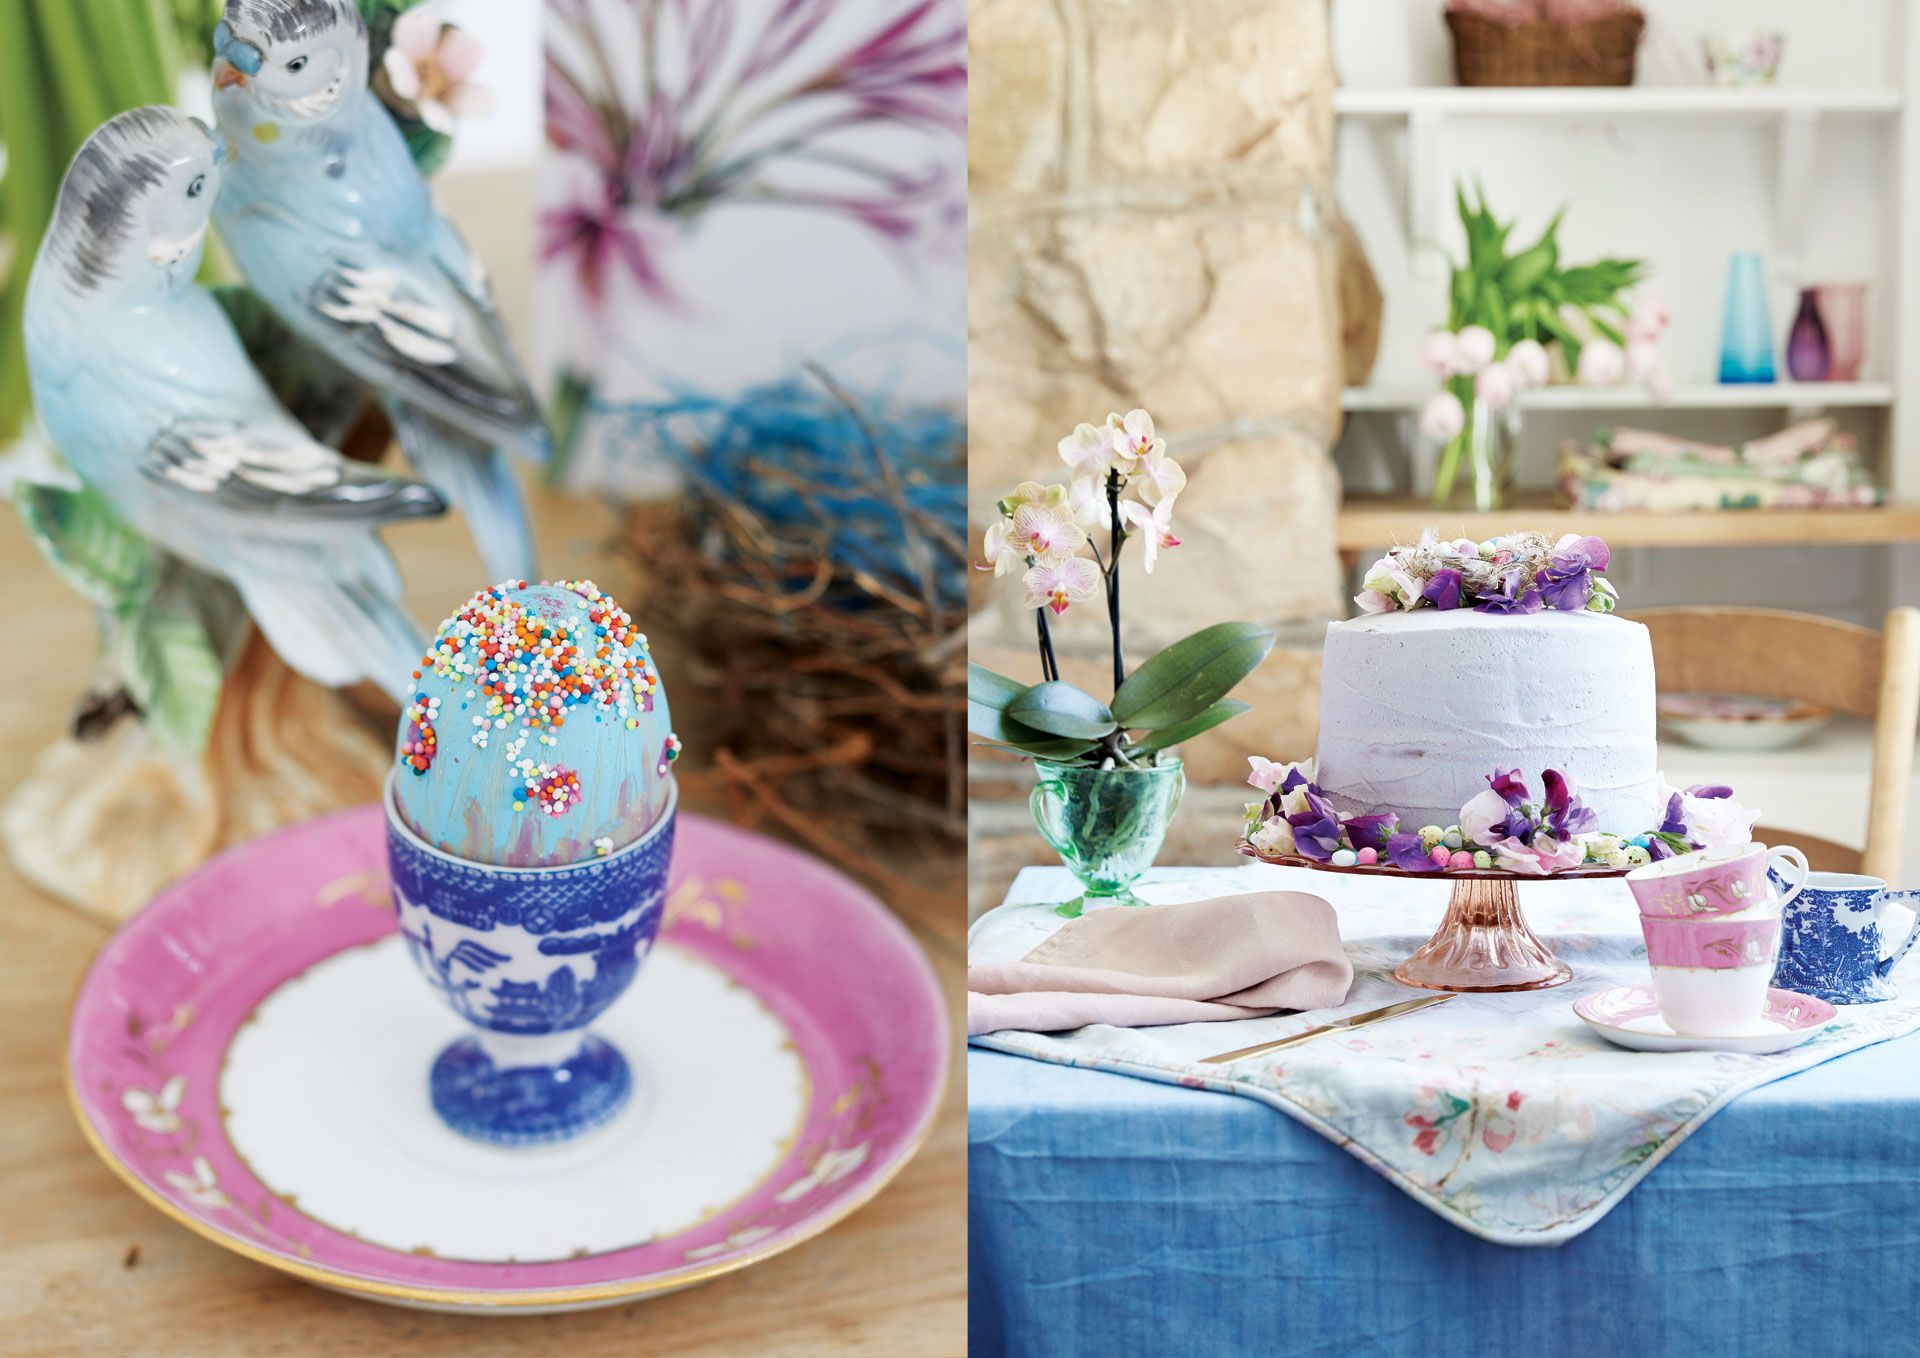 Evoking Easter: Tablescapes Inspired By Nature's Bounty And A Nostalgic Return Of Floral Prints